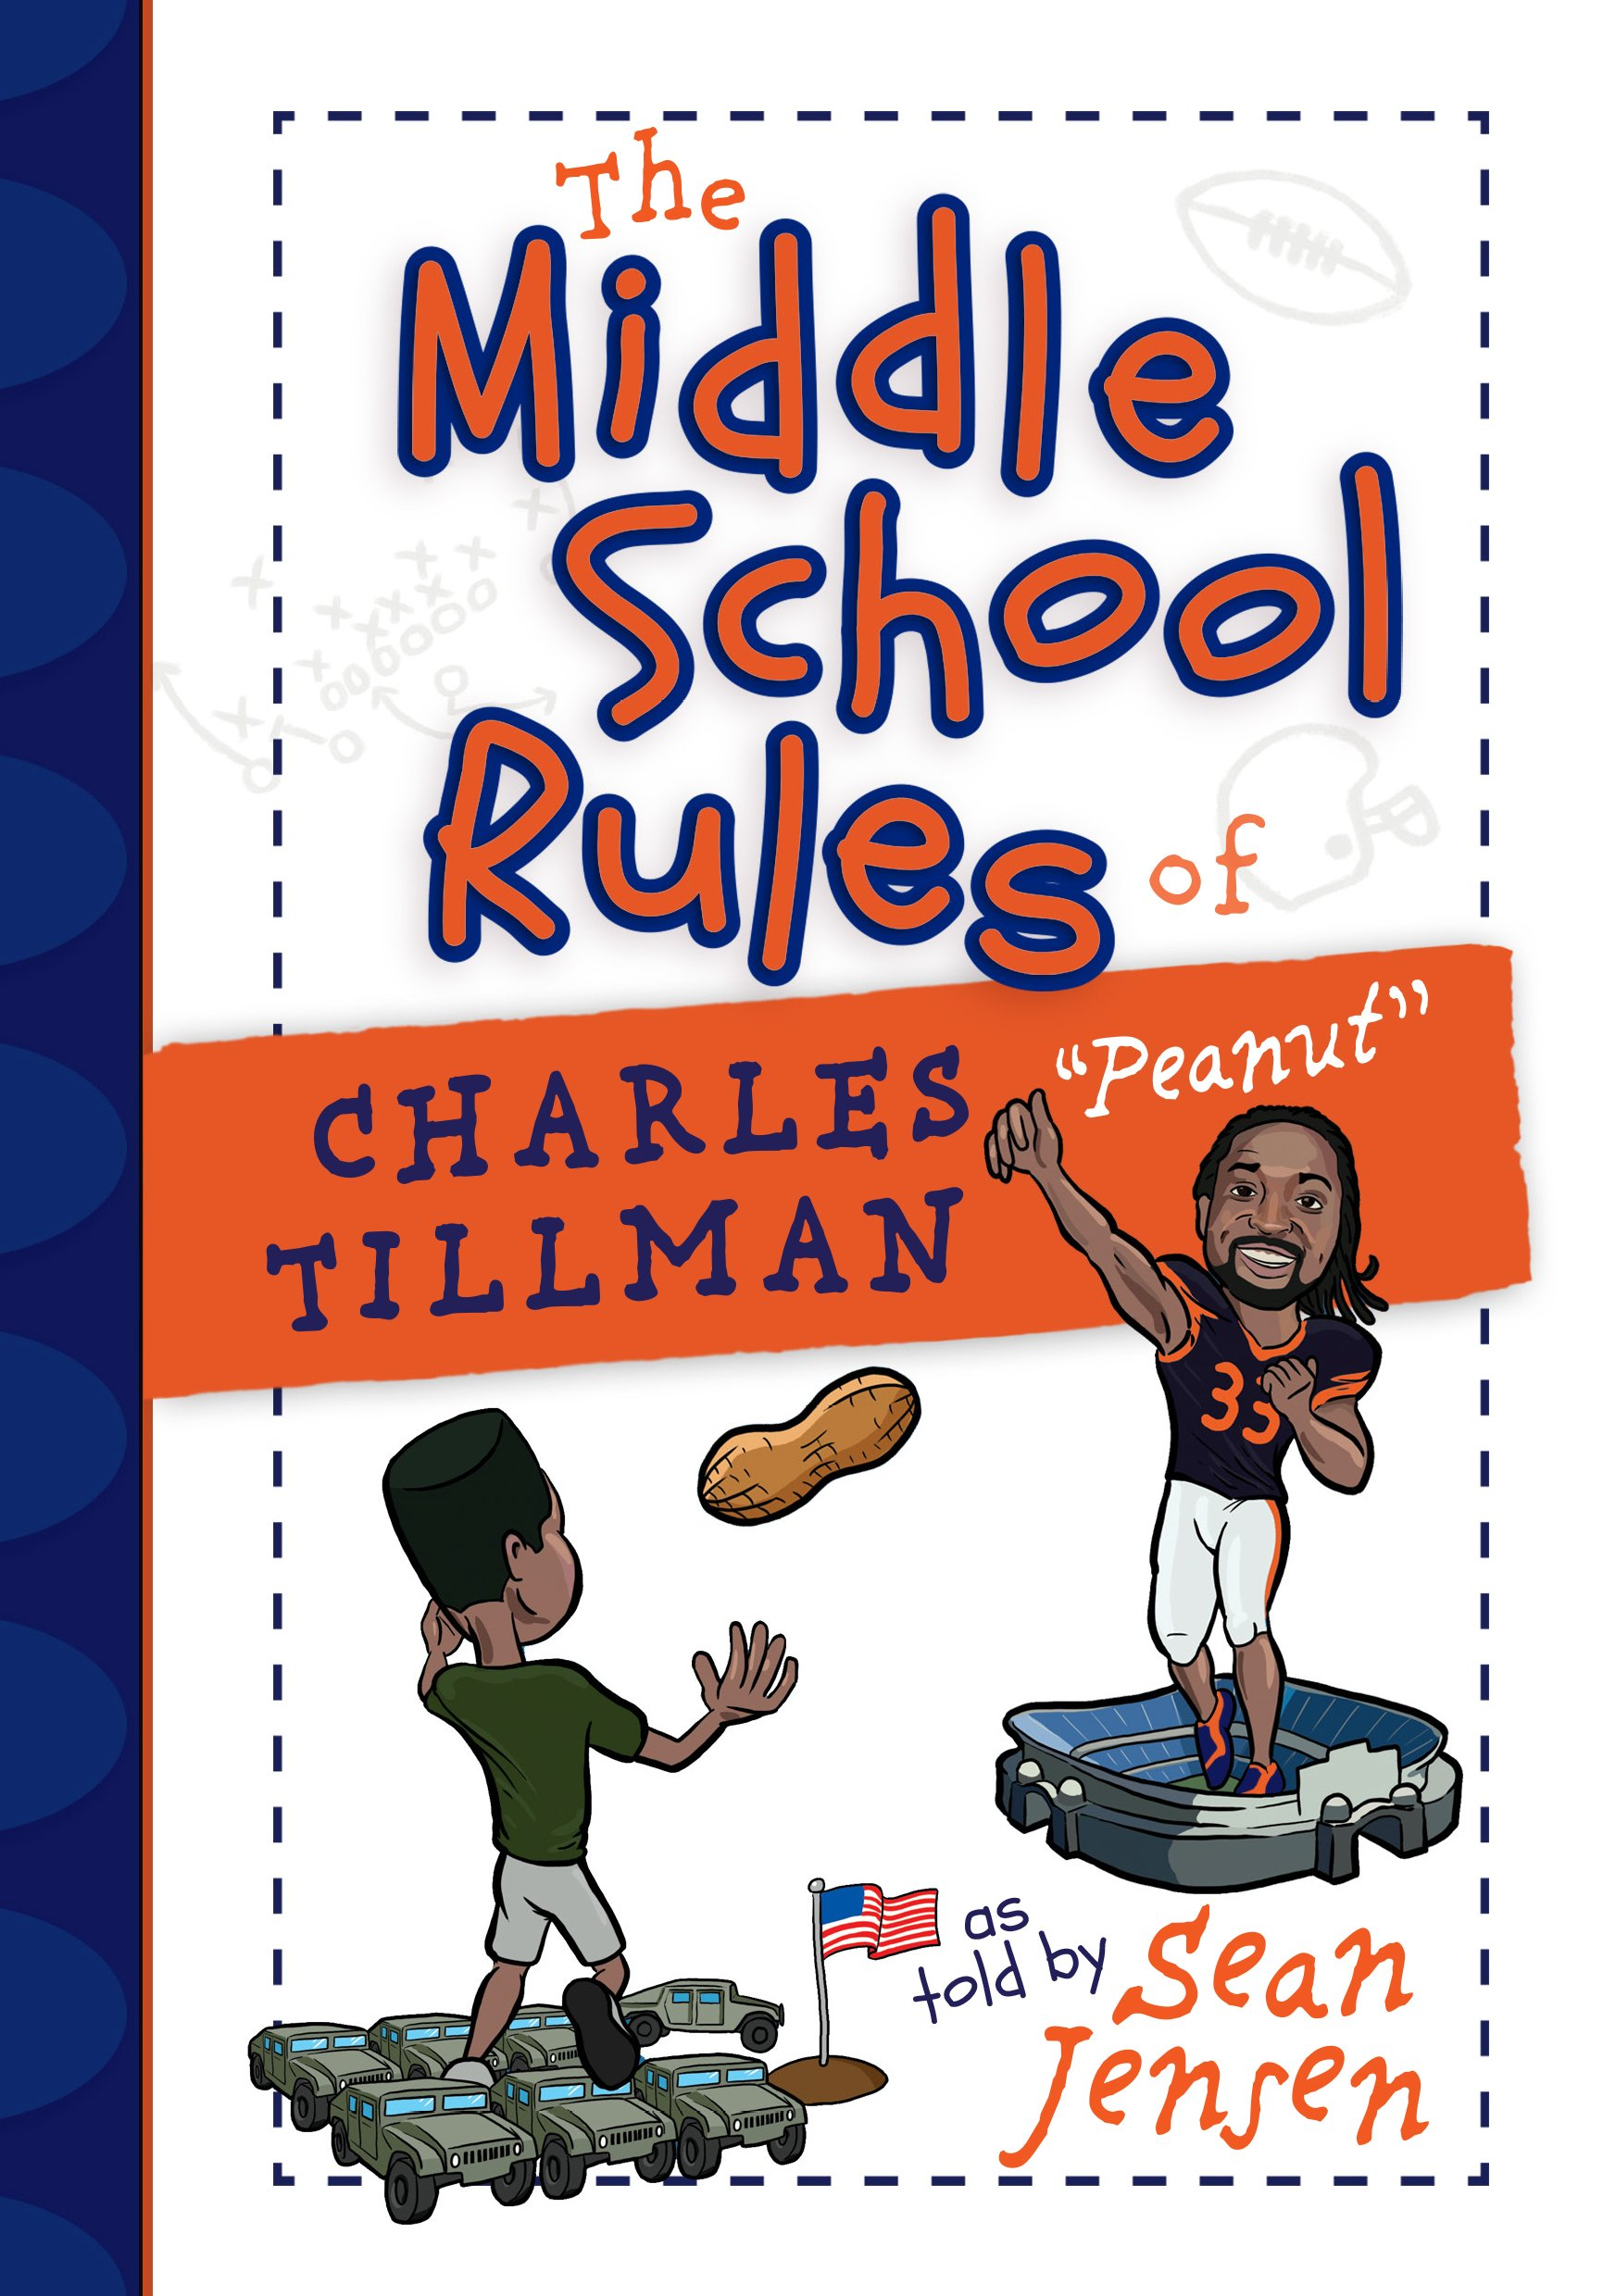 The Middle School Rules of Charles Tillman: Peanut by Broadstreet Pub Group LLC (Image #1)